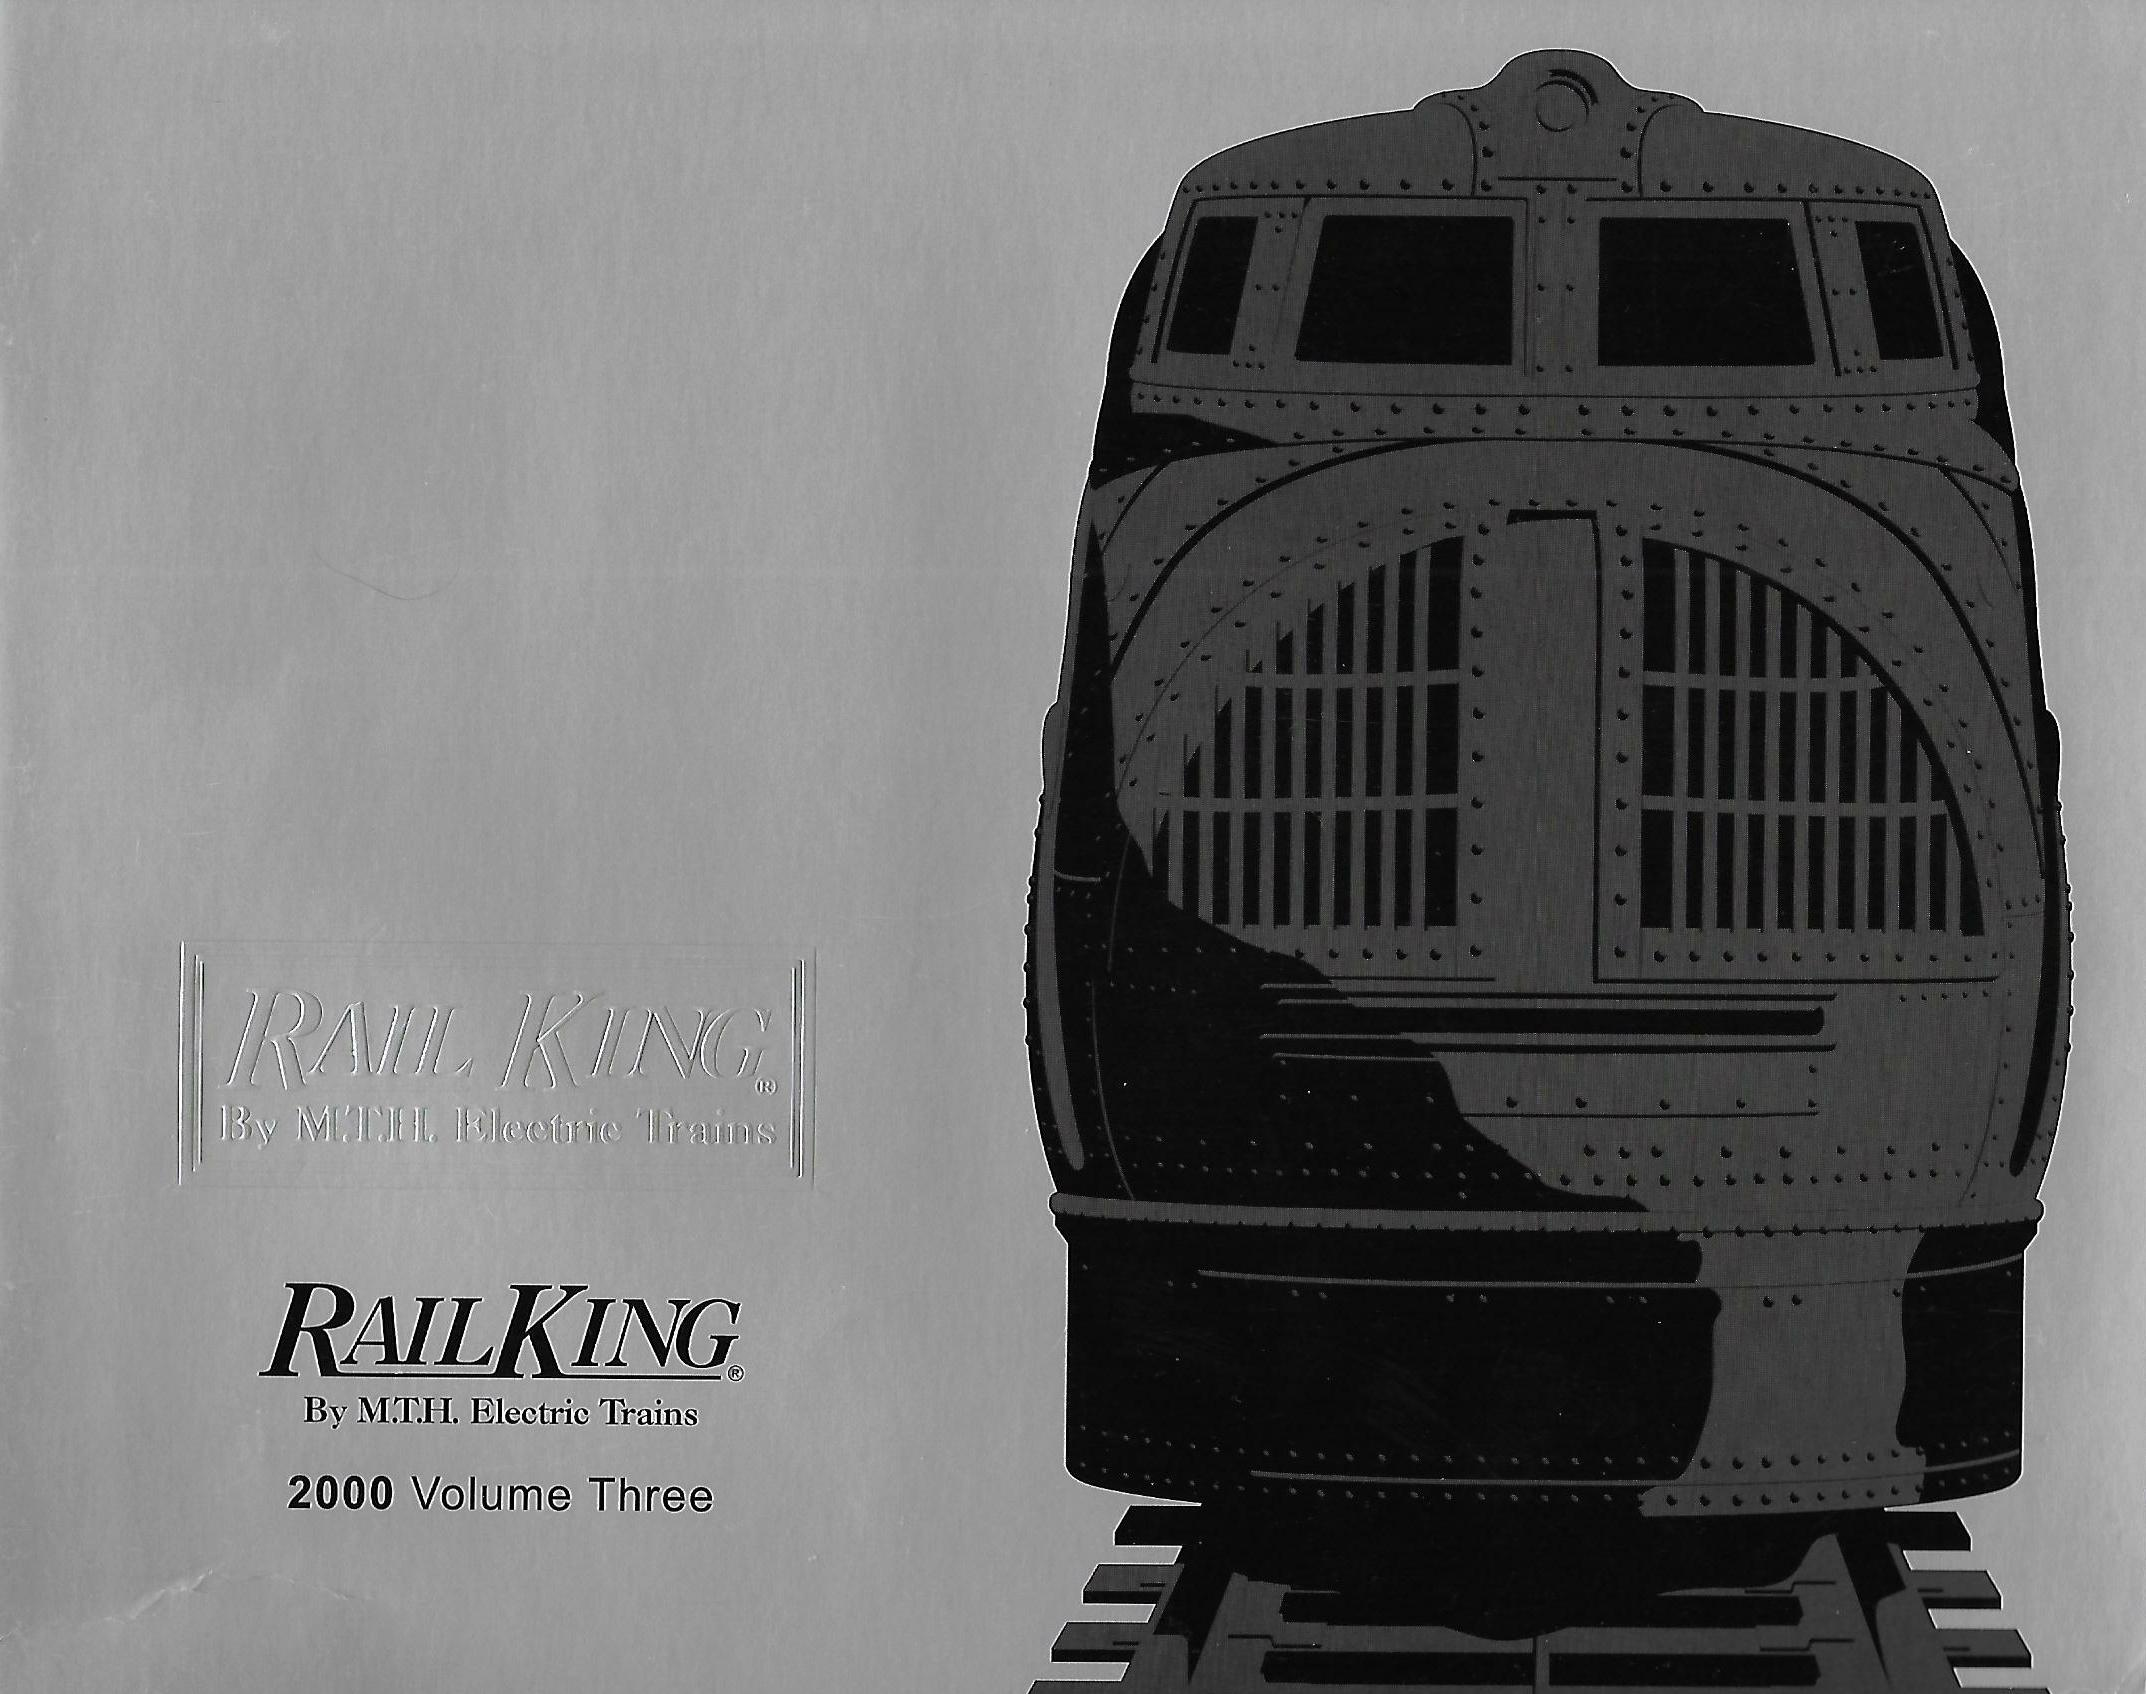 MTH 2000 Volume Three RailKing Catalog image